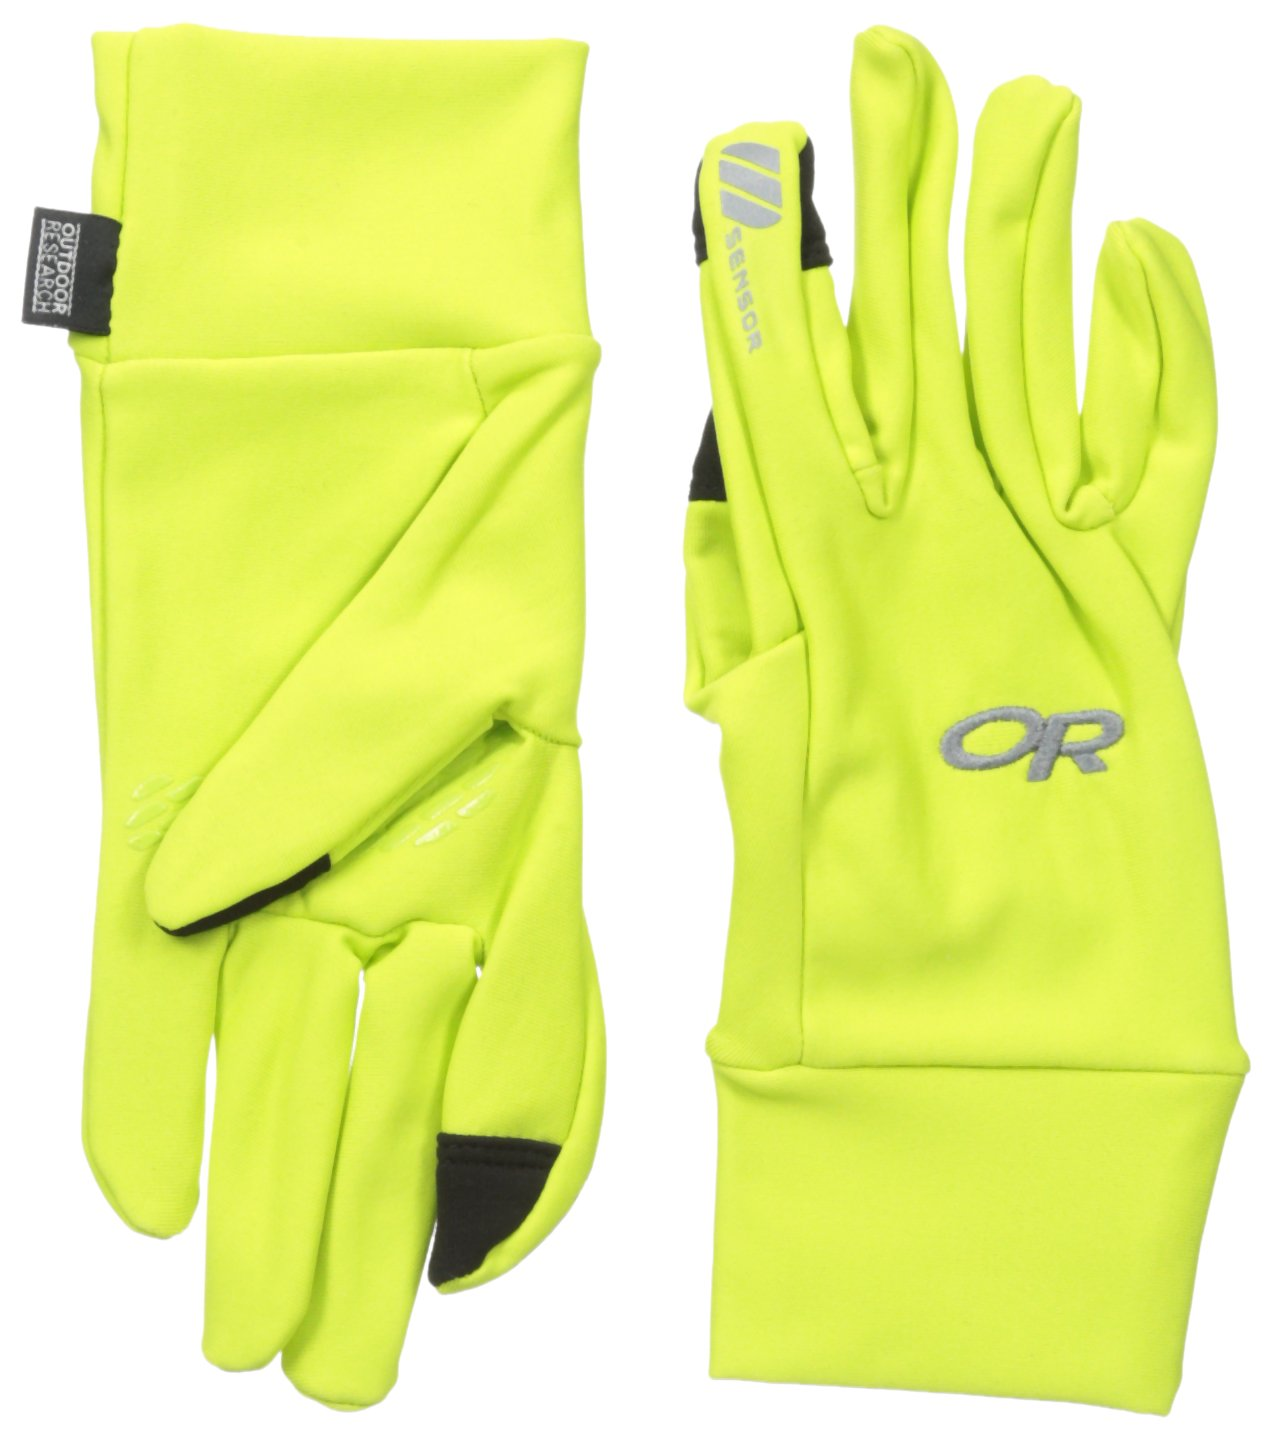 Mens yellow gloves - Amazon Com Outdoor Research Men S Pl Base Sensor Gloves Sports Outdoors